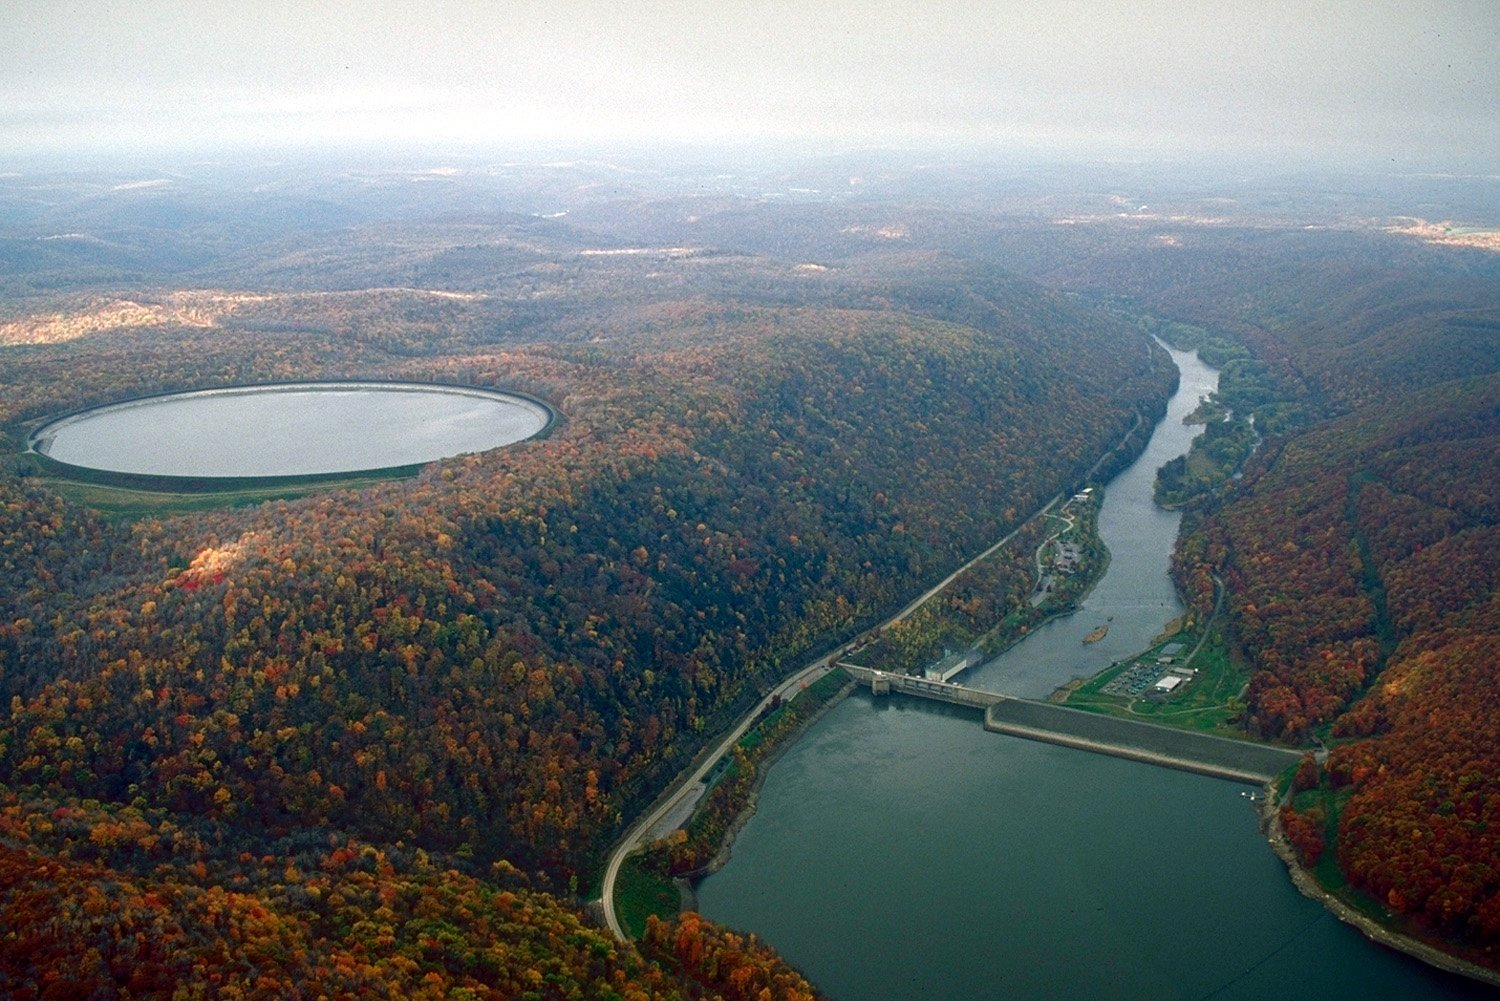 the permaculture research instituteseneca pumped storage generation station, a hydroelectric power plant in pennsylvania in warren county,